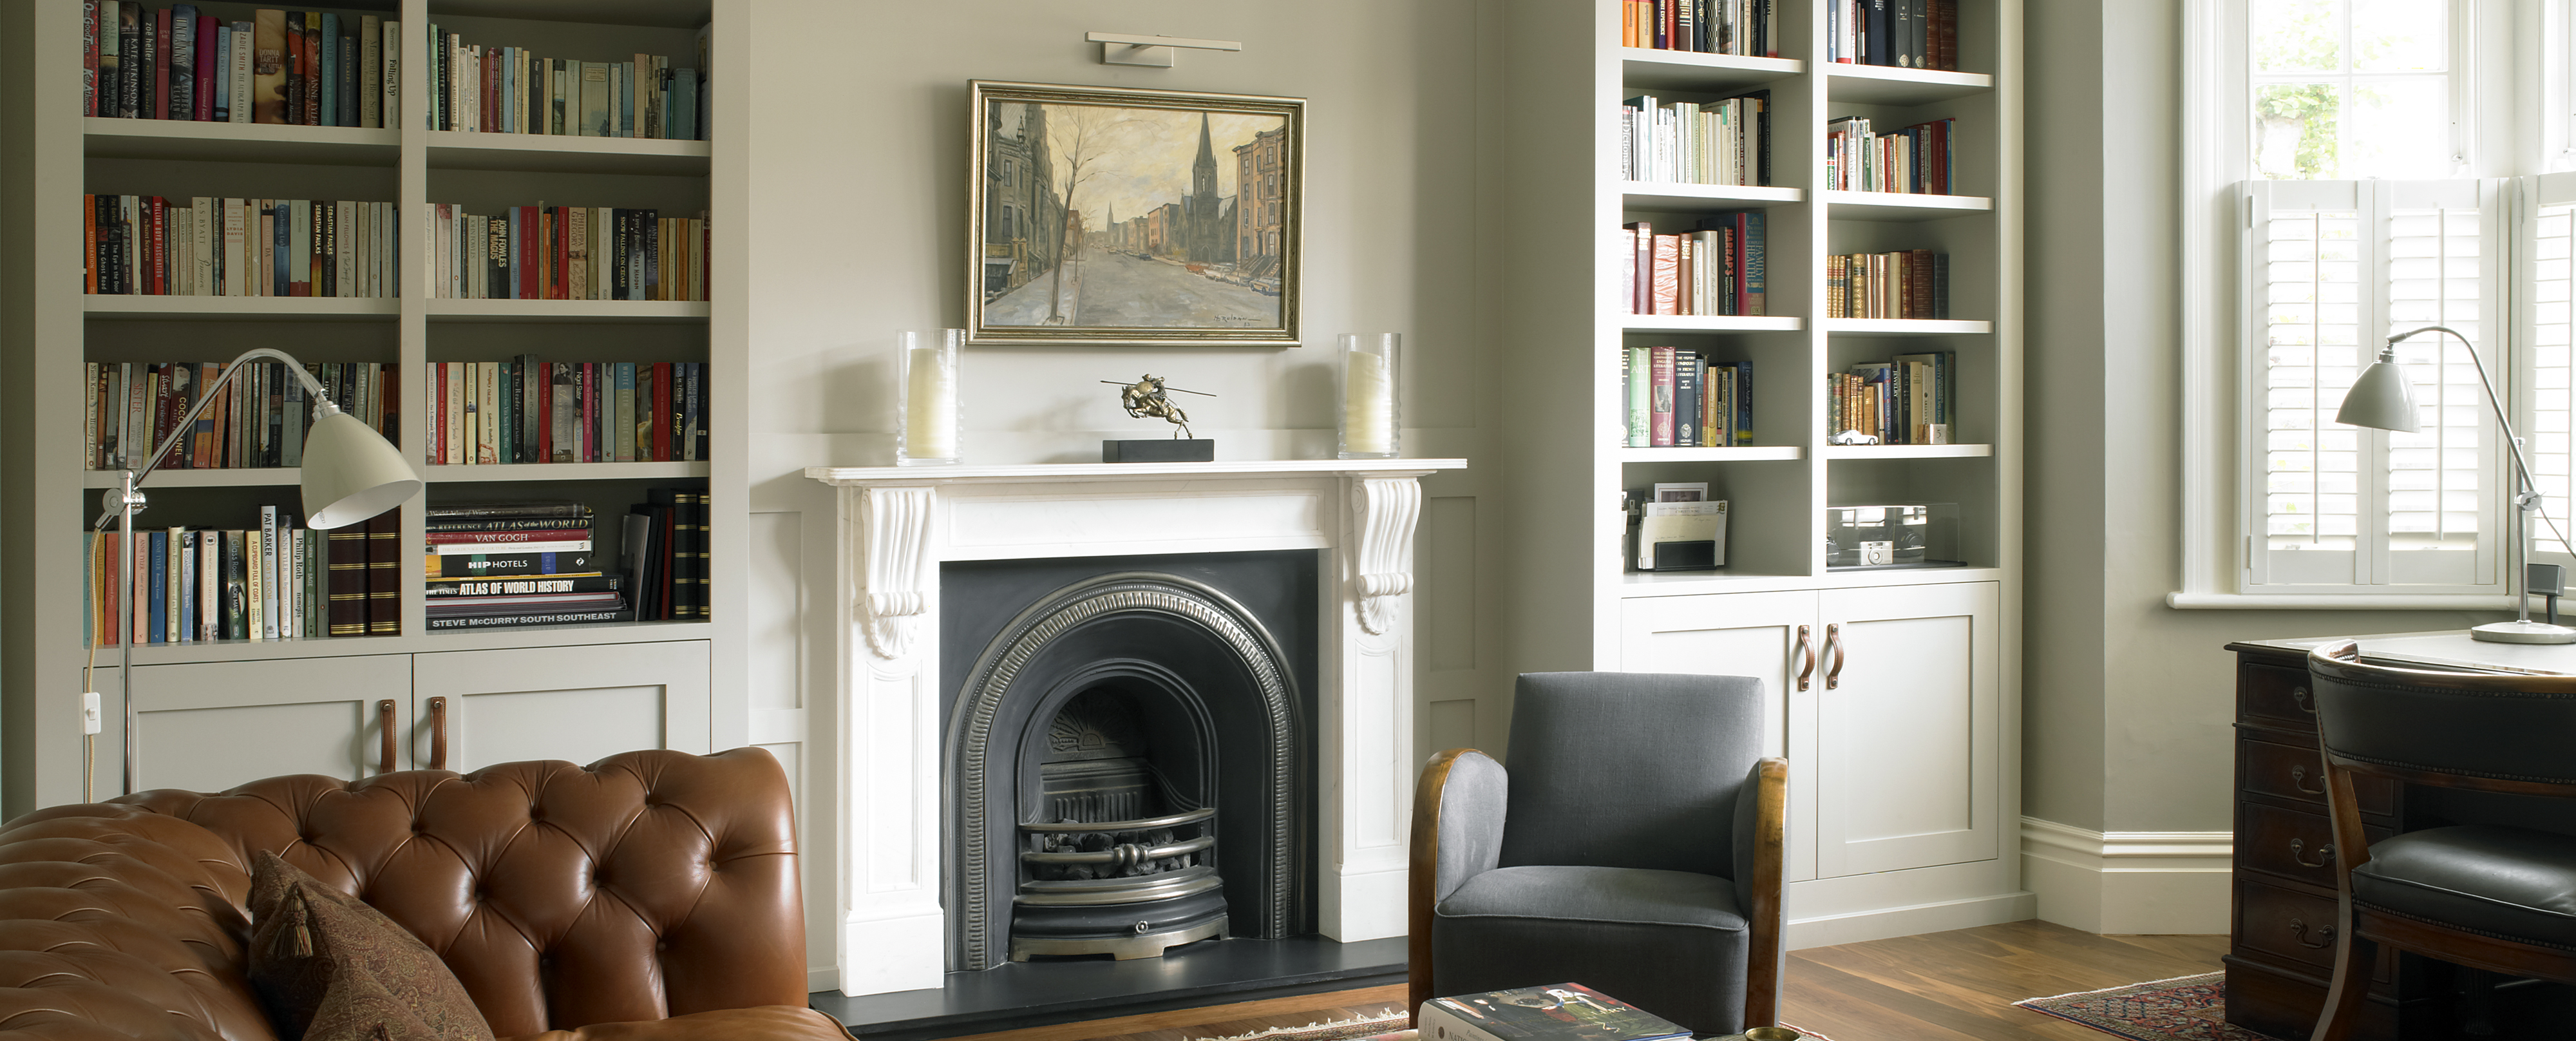 Bespoke furniture by Brayer - Fitted cabinets and wall panelling for traditional Edwardian study and living area